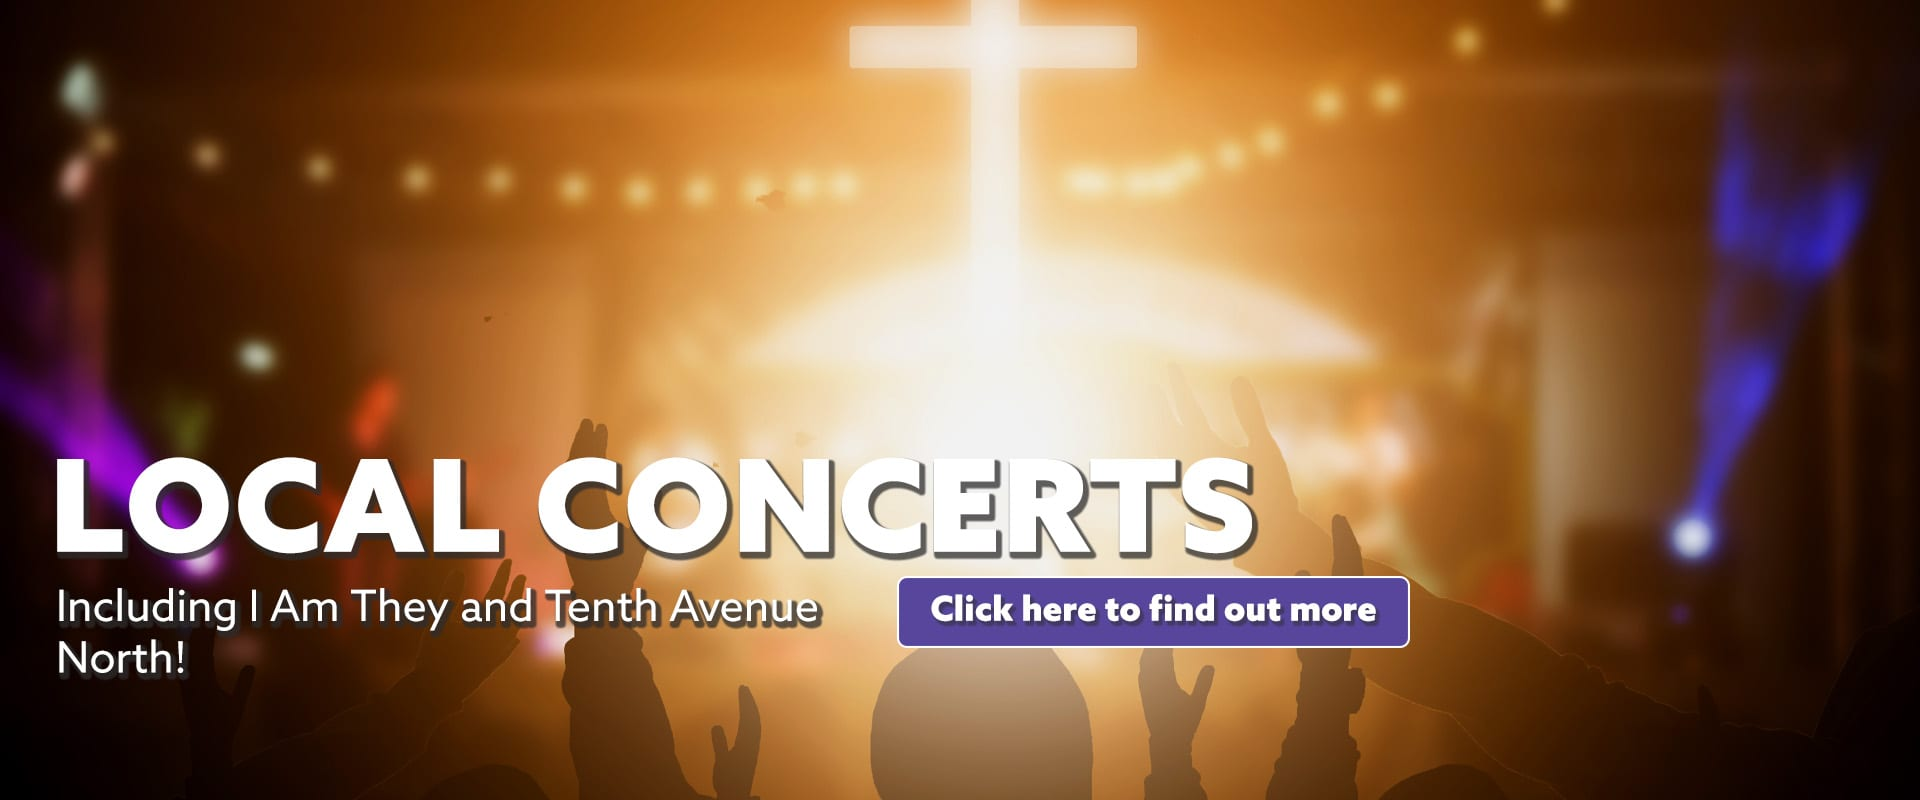 Local-Concerts-Lift-91-3-Updated